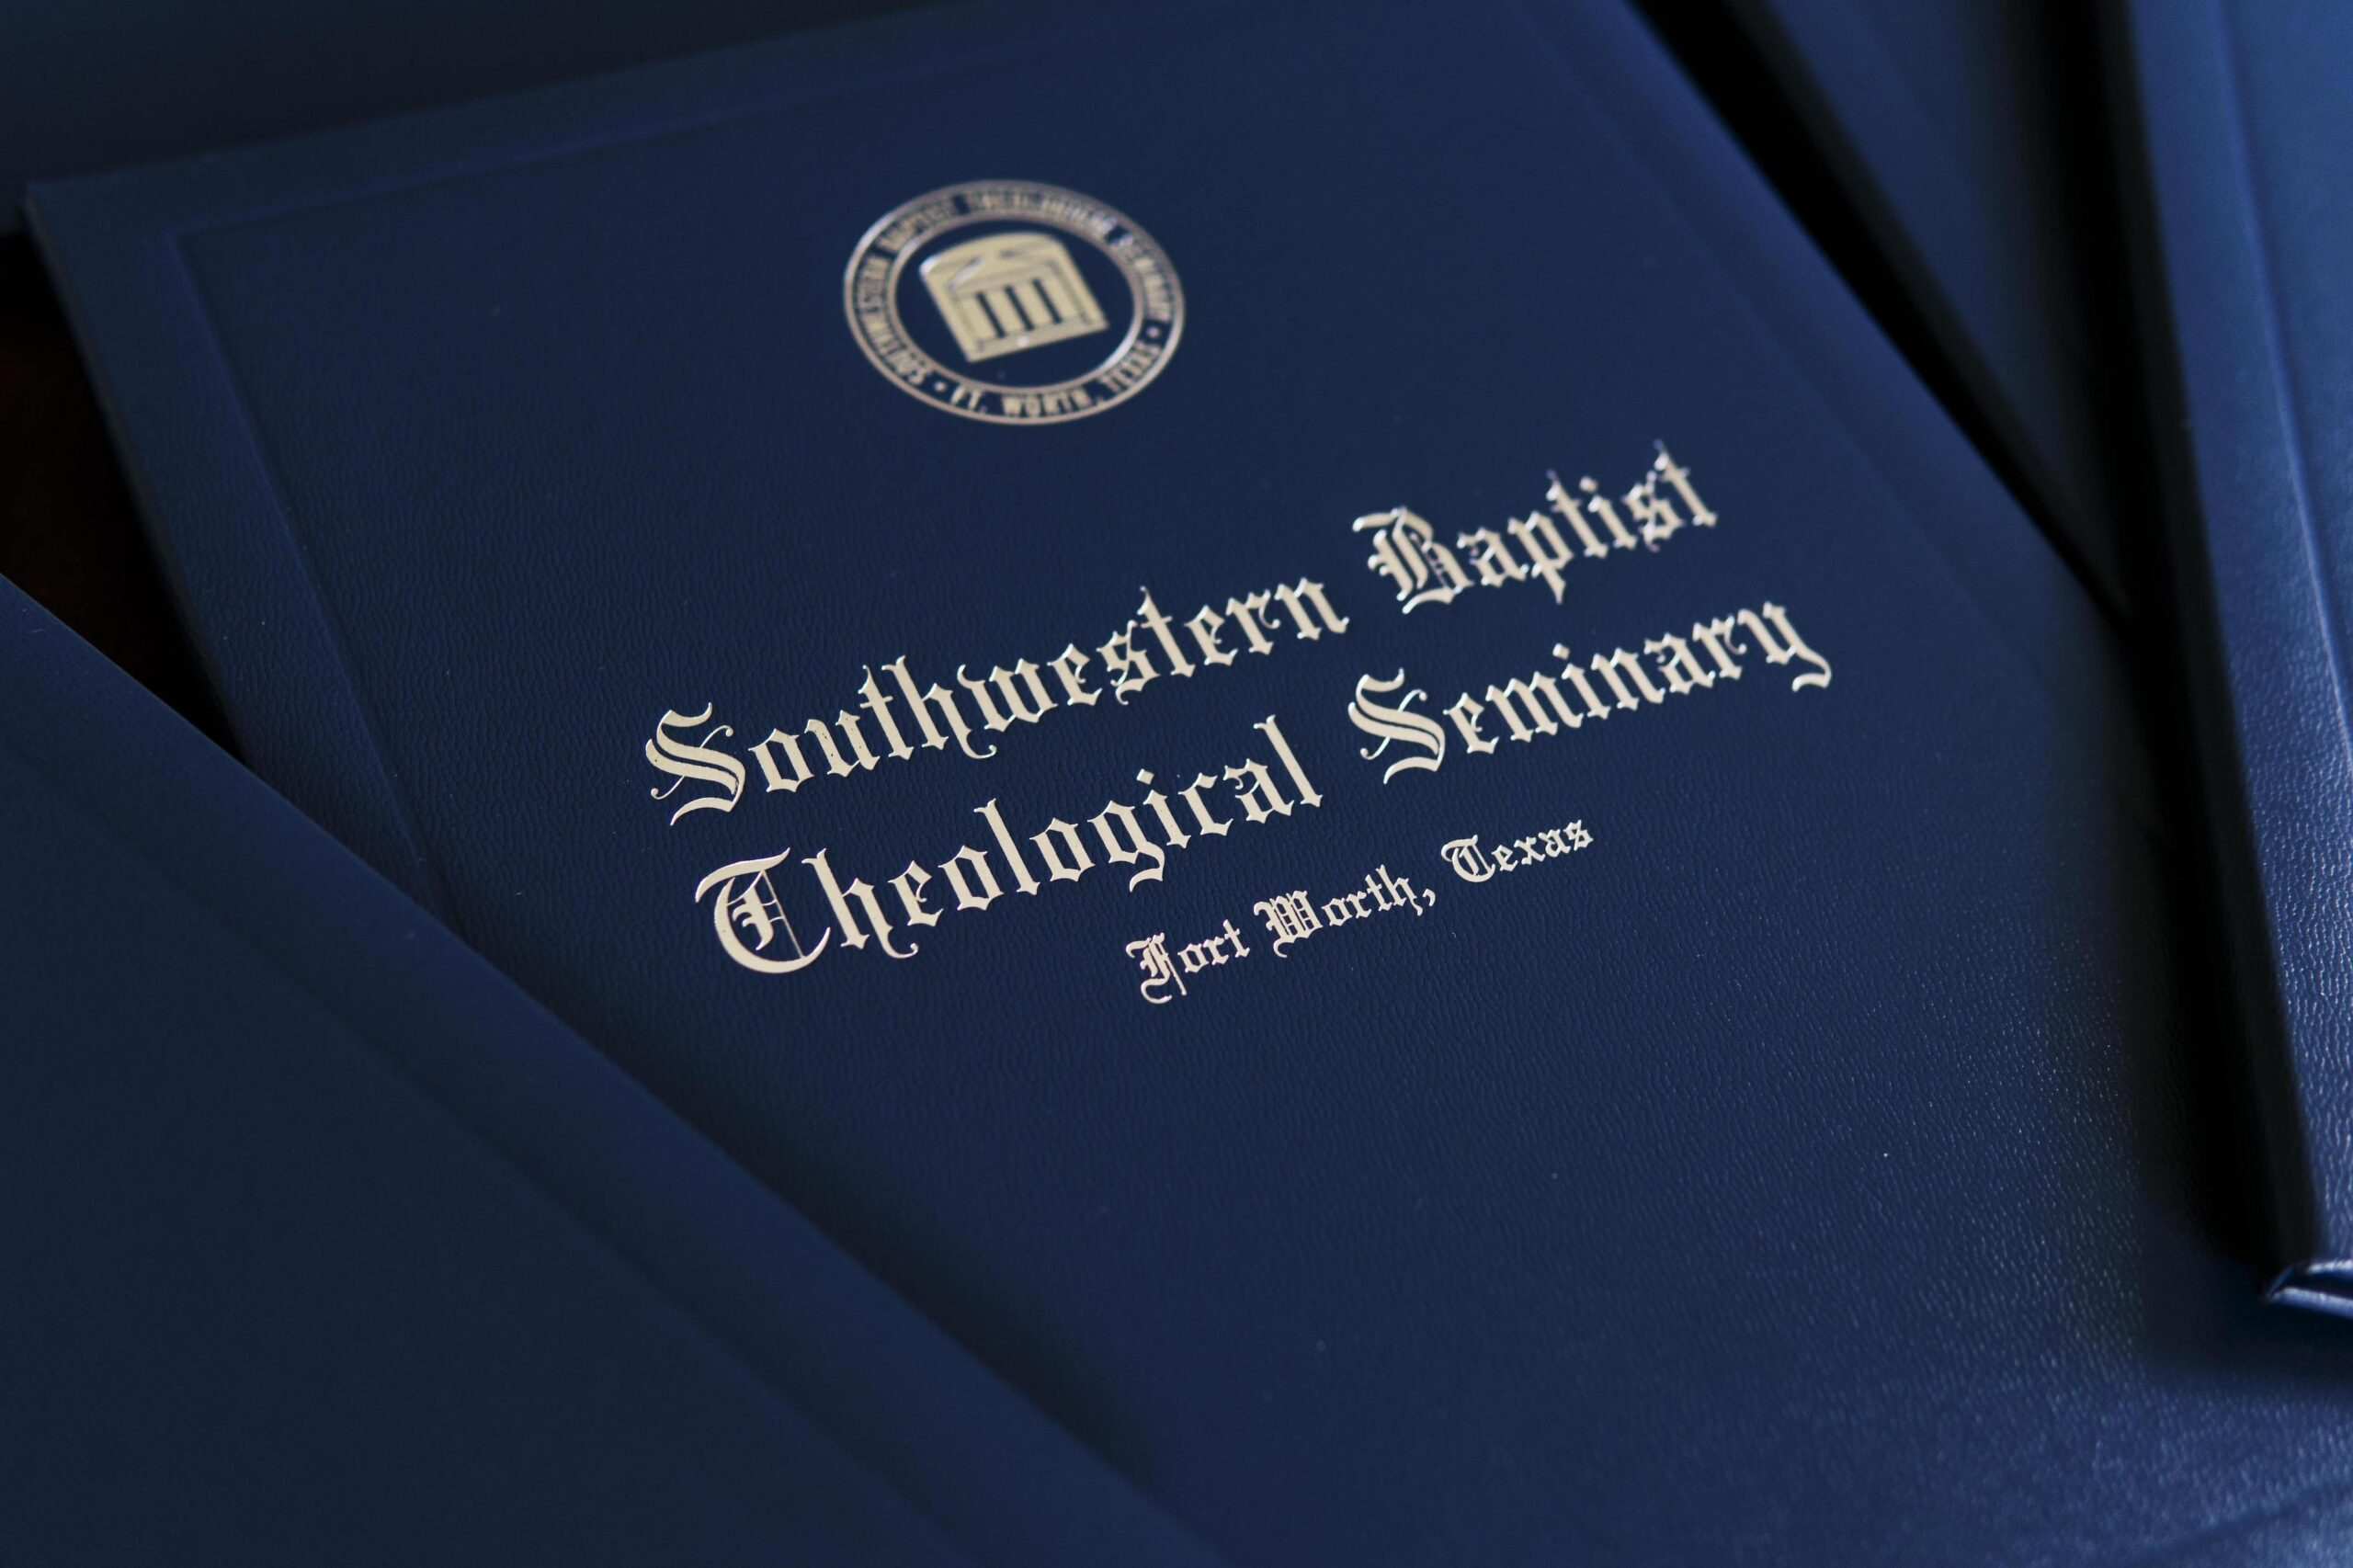 Southwestern Seminary to hold in-person commencement ceremony